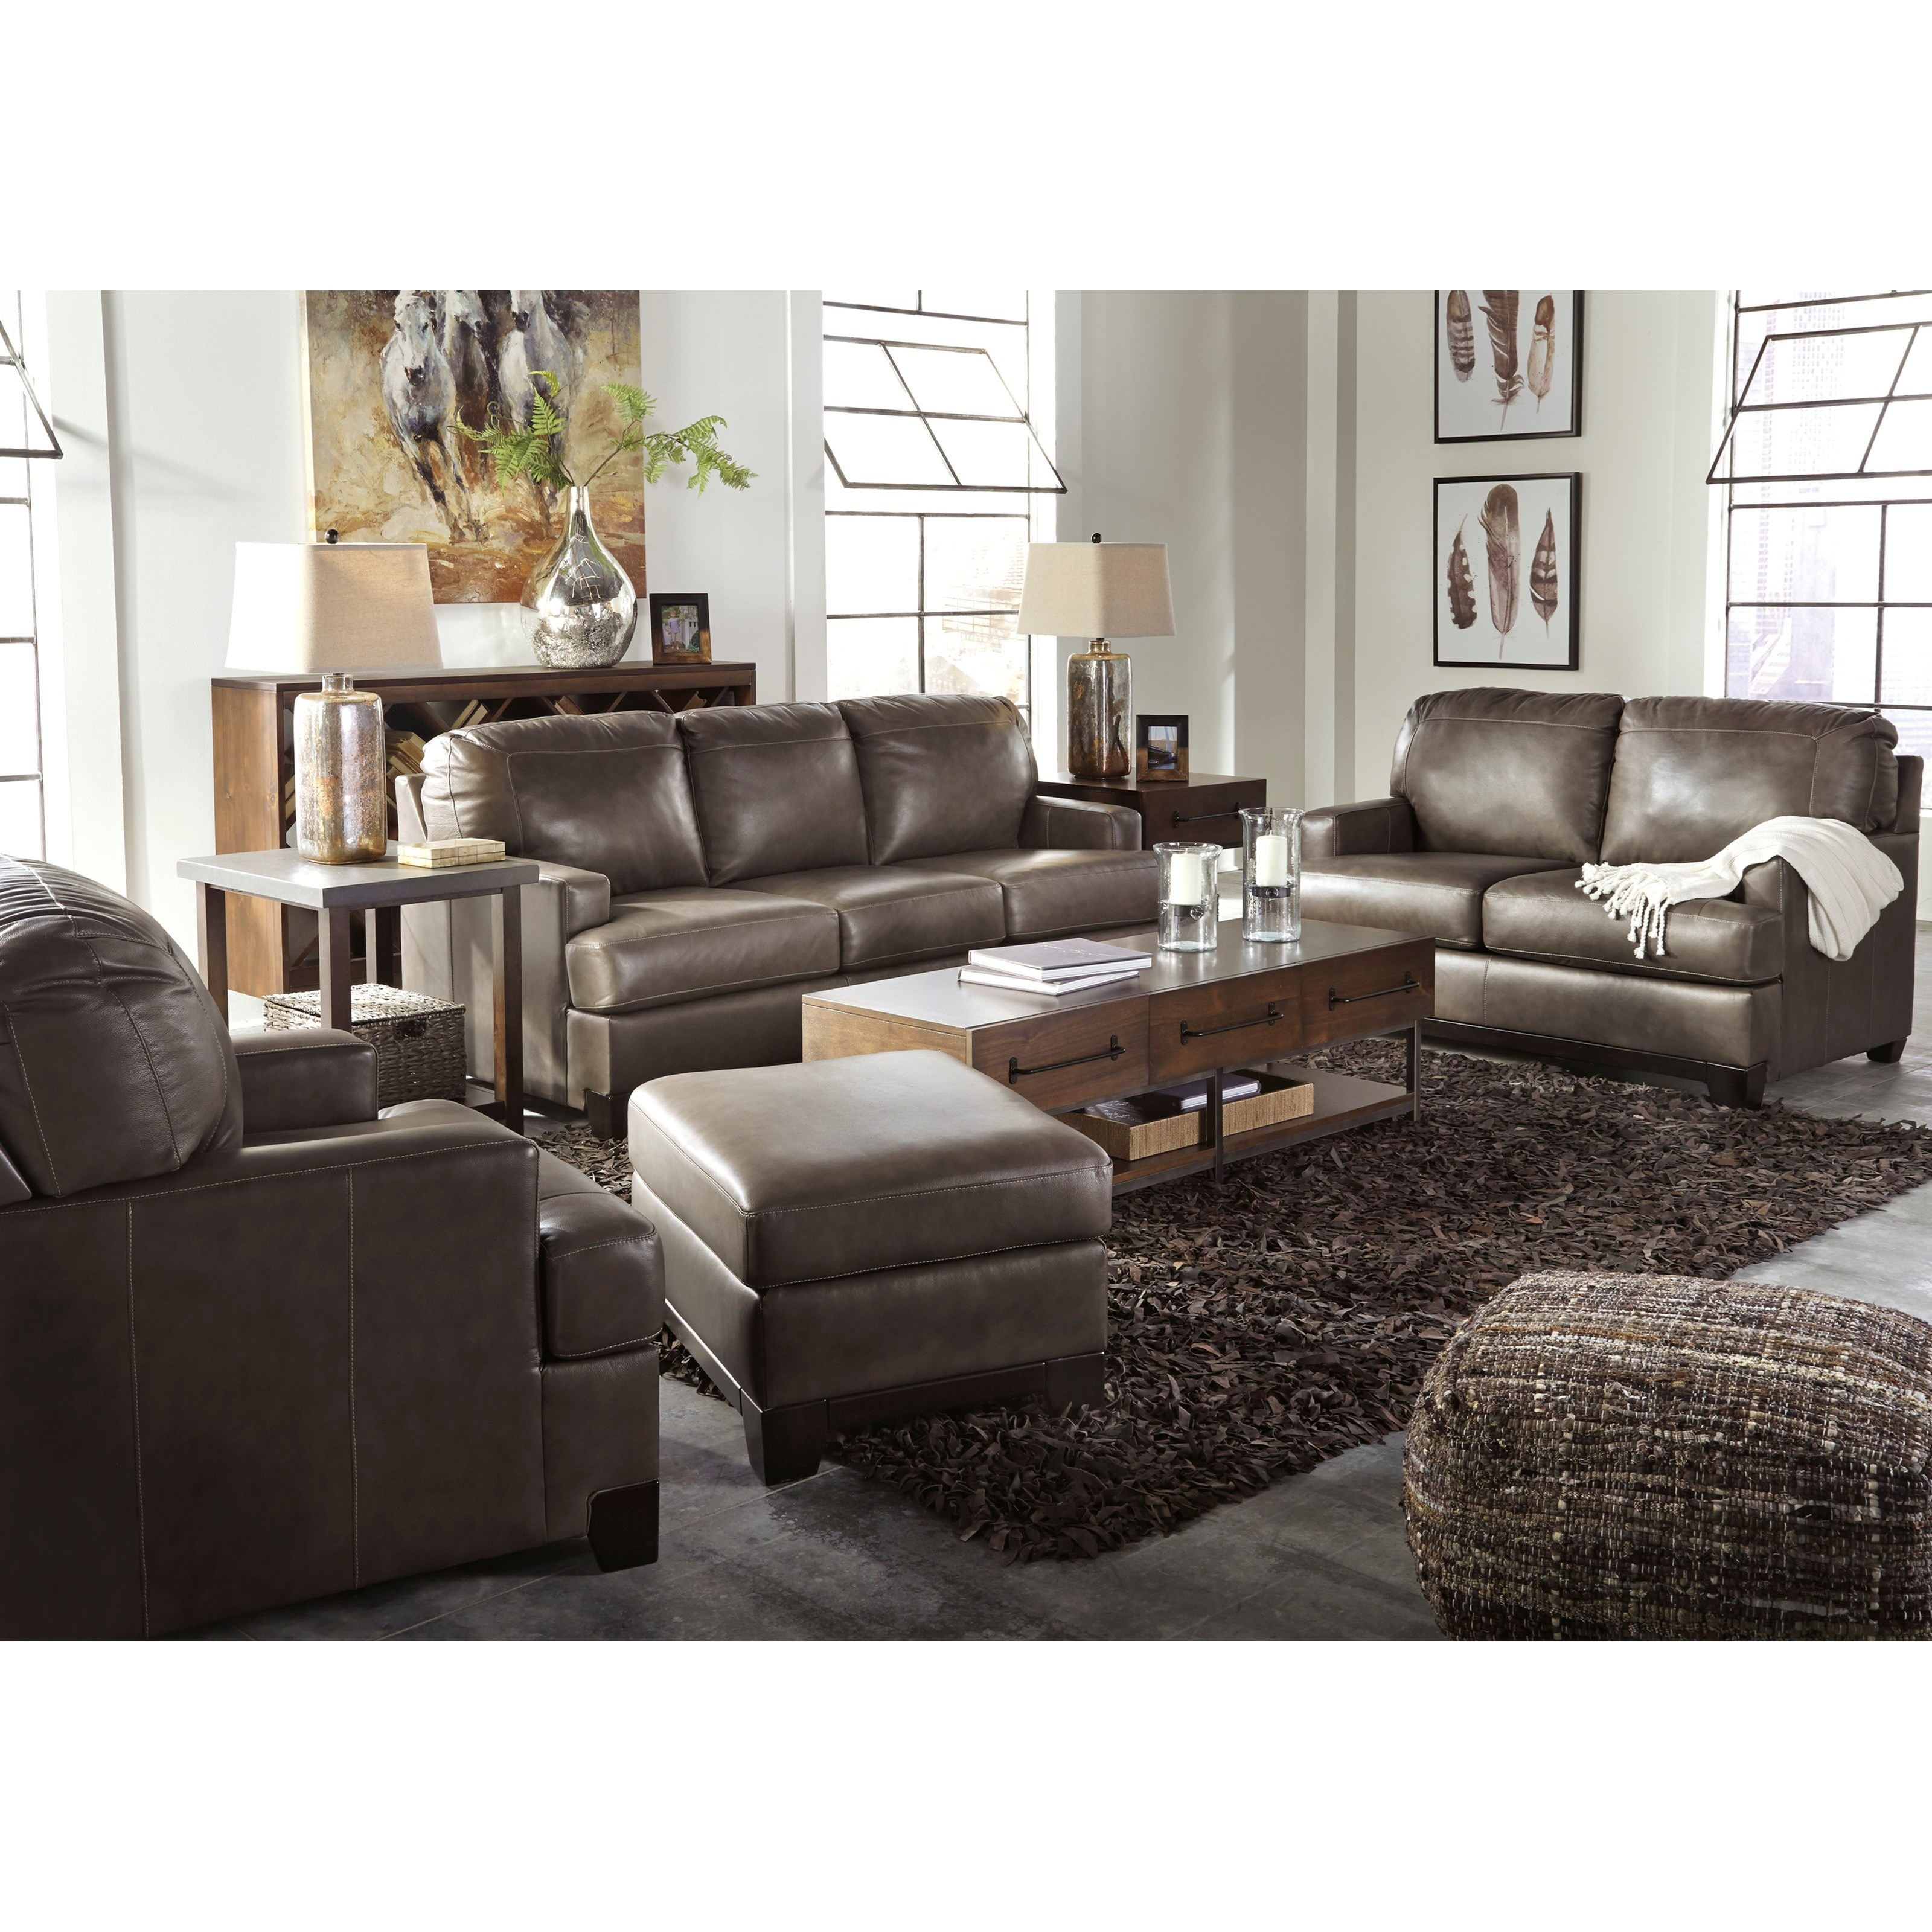 Ashley signature design derwood stationary living room for Living room furniture groups